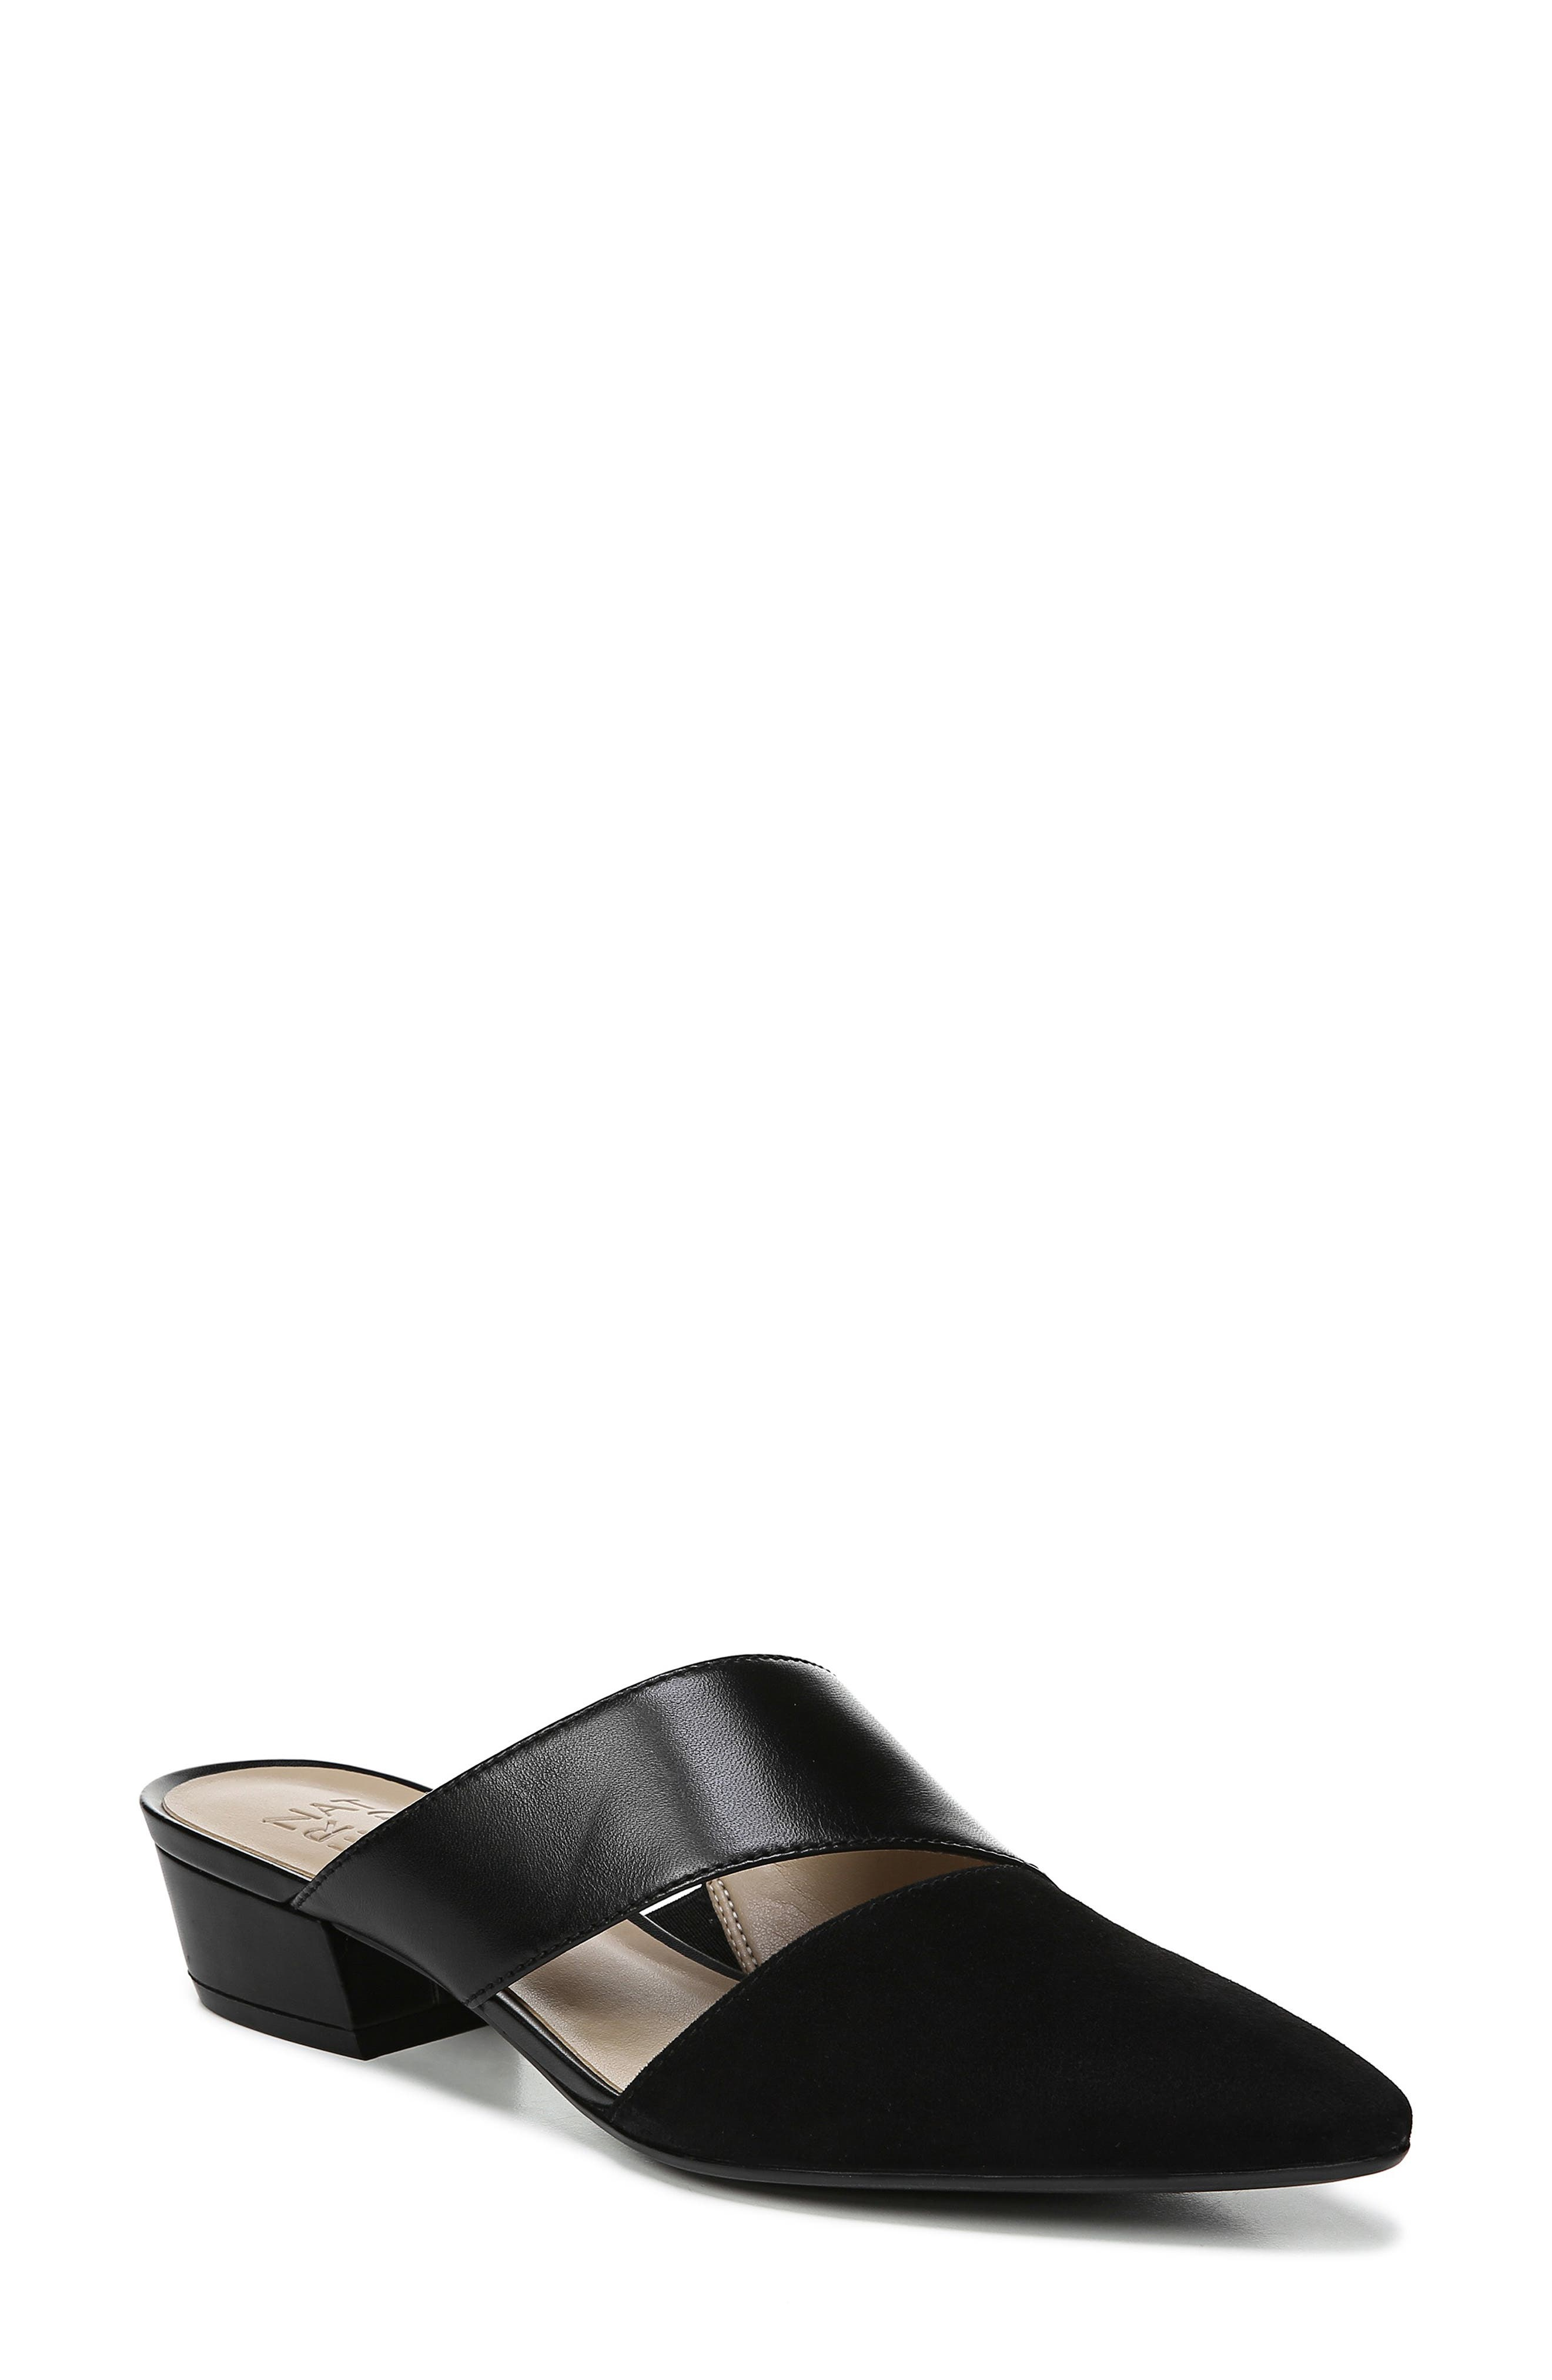 Bev Pointy Toe Mule, Main, color, BLACK SUEDE/ LEATHER